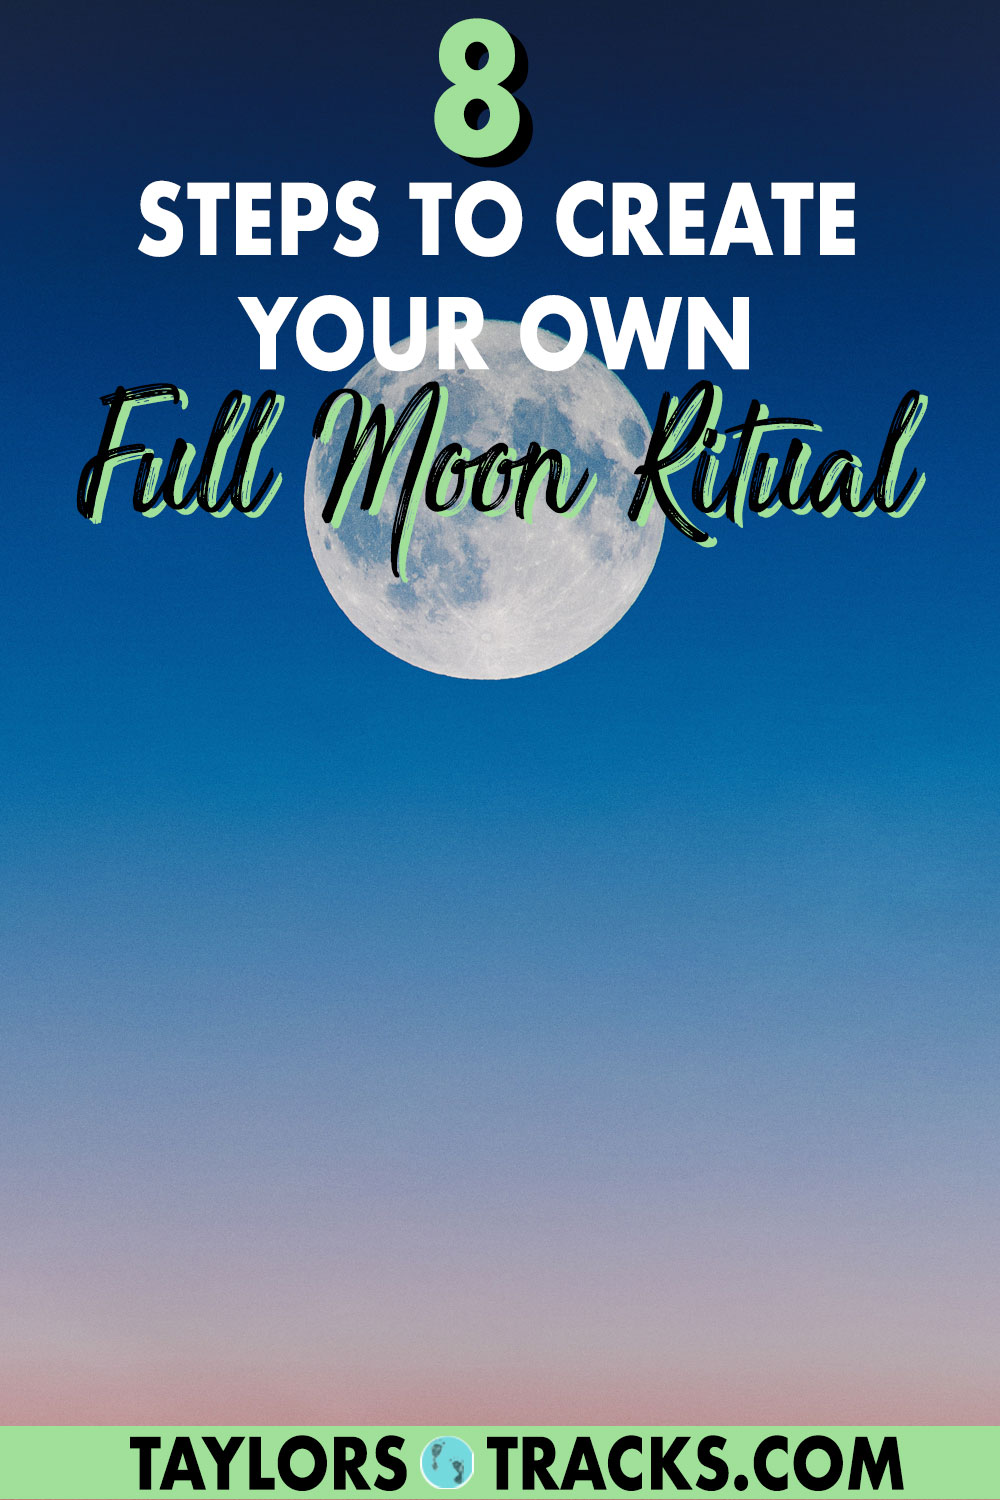 This full moon ritual is simple yet powerful. Learn how to manifest with the moon and let go with this full moon ceremony designed to let you release what is no longer serving you. Click to start your moon ritual!